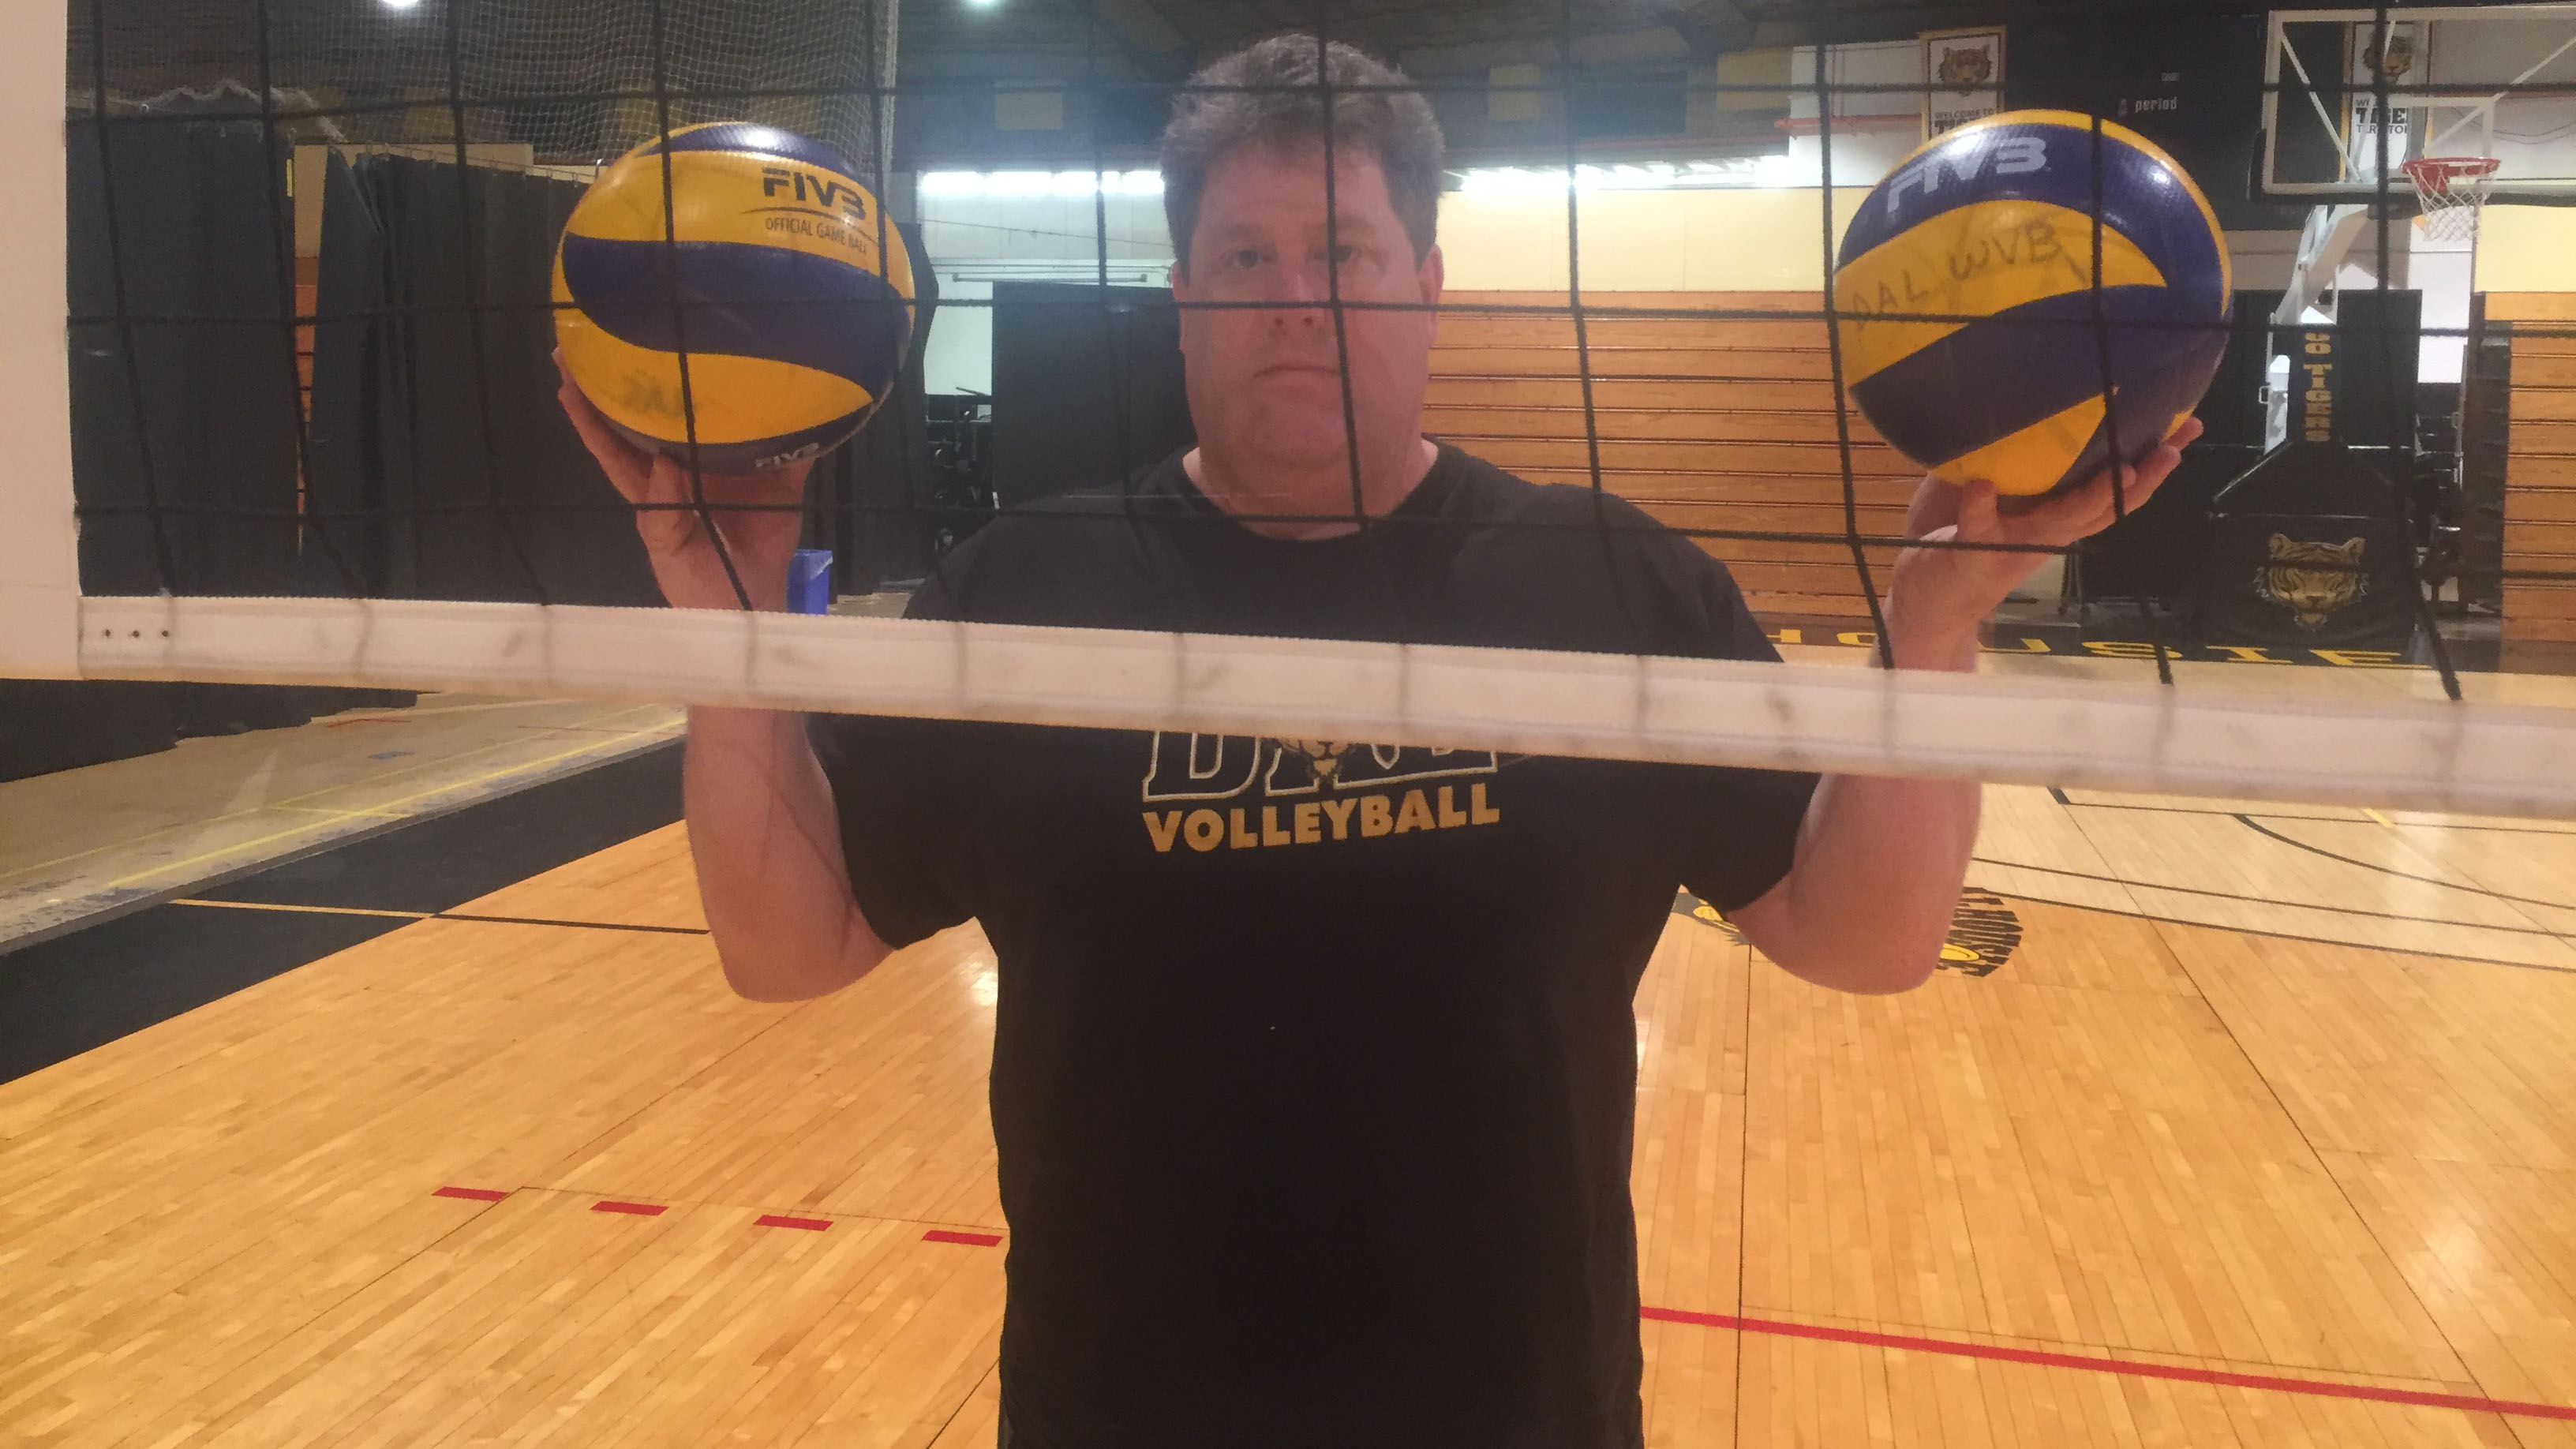 Rick Scott is just the second coach in Dal women's volleyball history to reach 100 wins